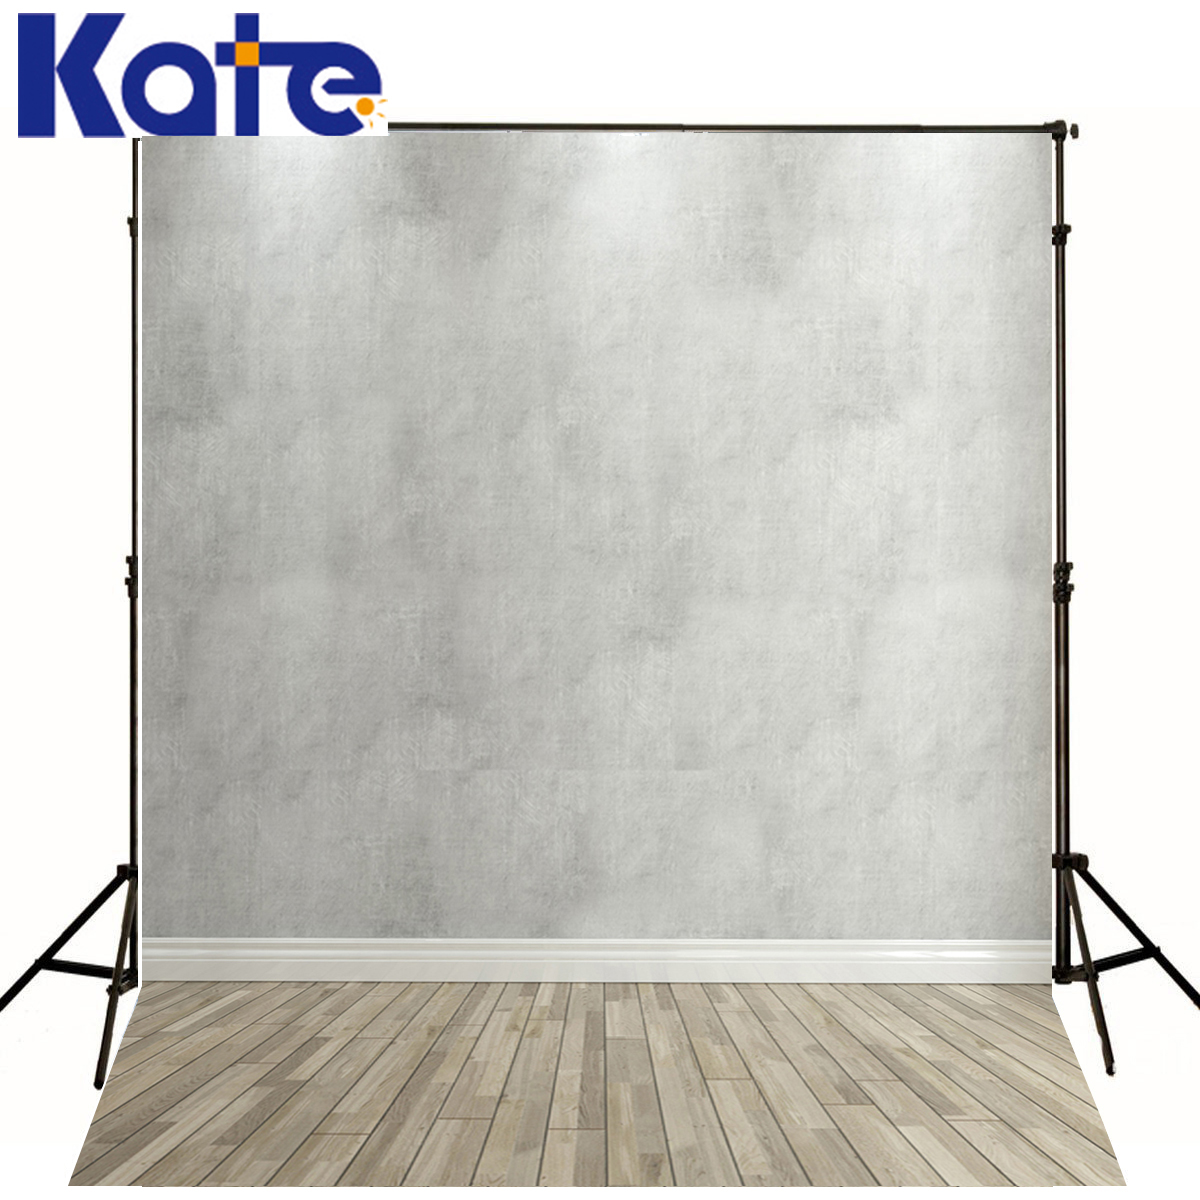 цена на Kate Wood Background Photography Solid White Wall Backdrop Photo Wood Floor Photocall Backgrounds For Photo Studio J01676